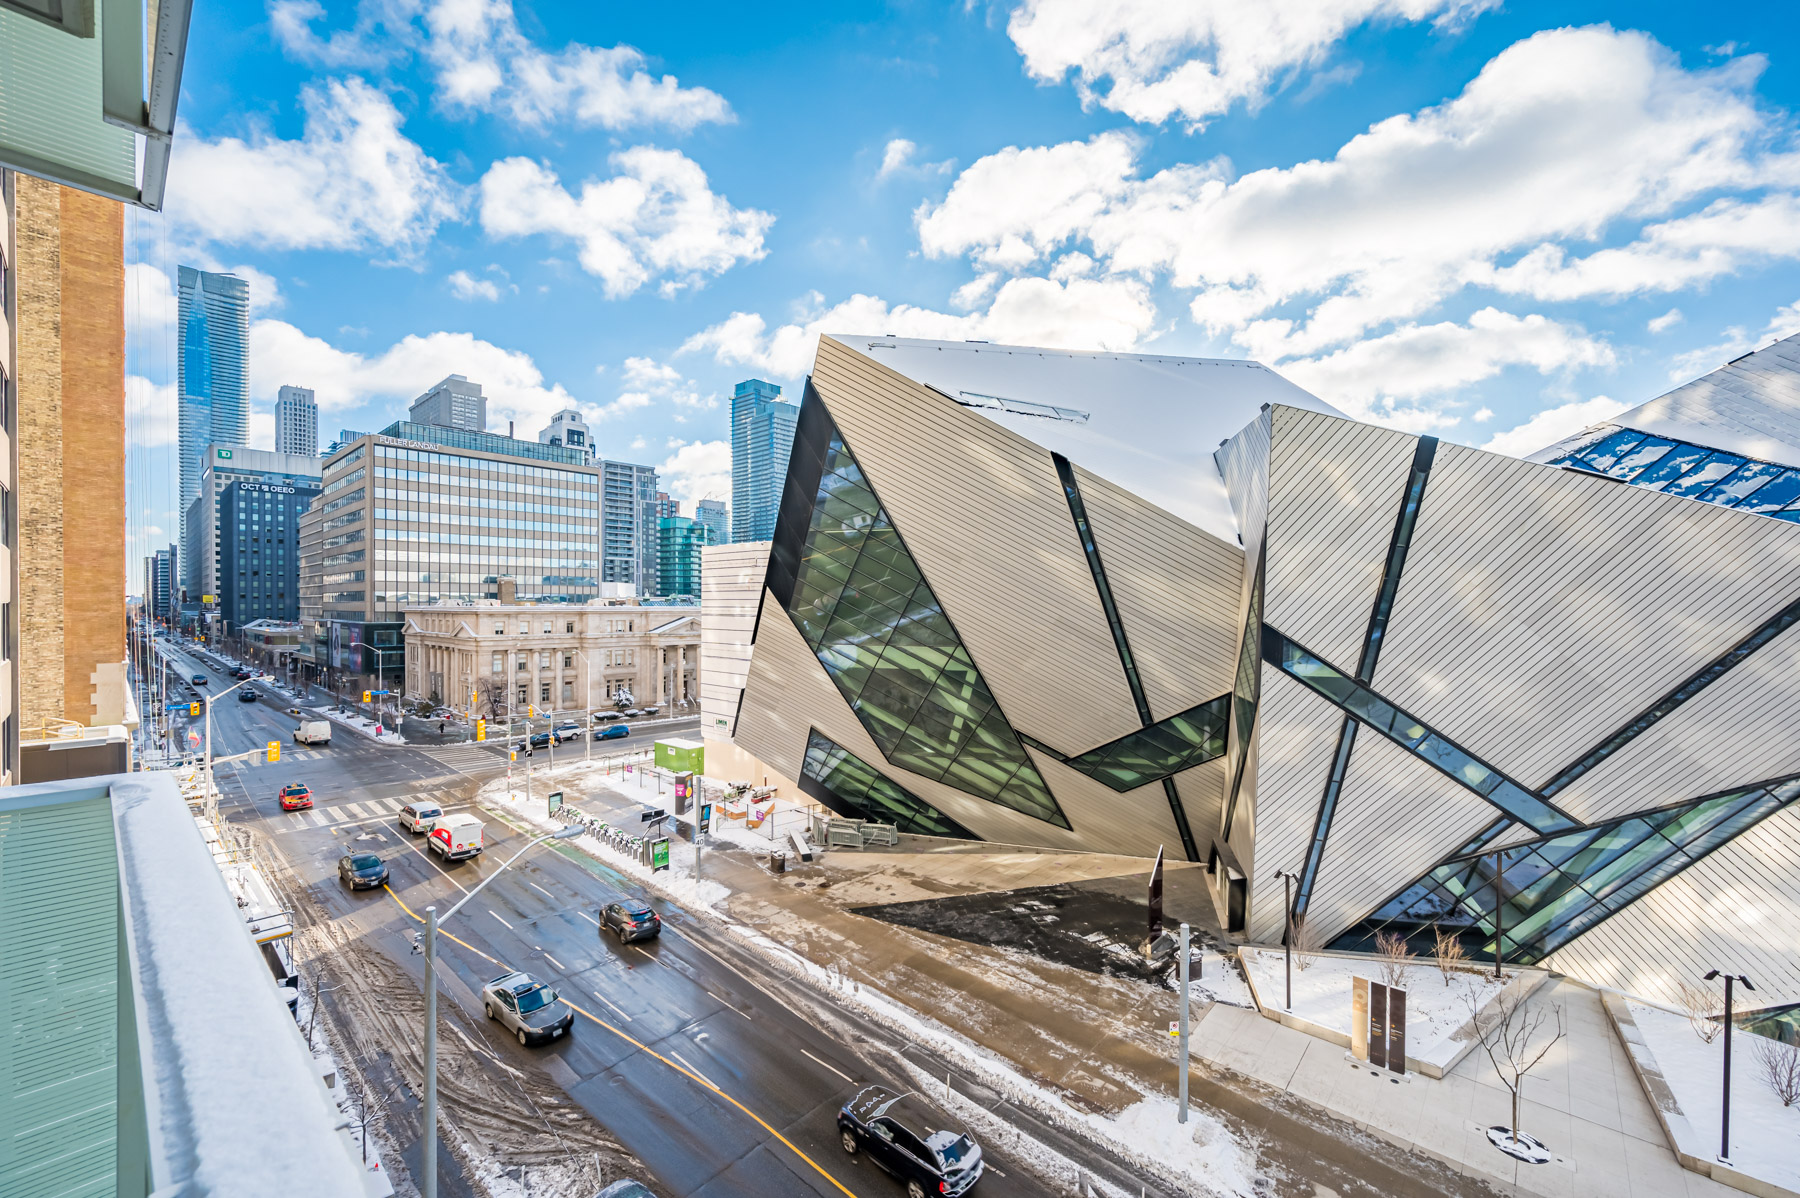 Abstract exterior of Royal Ontario Museum in Yorkville, Toronto.